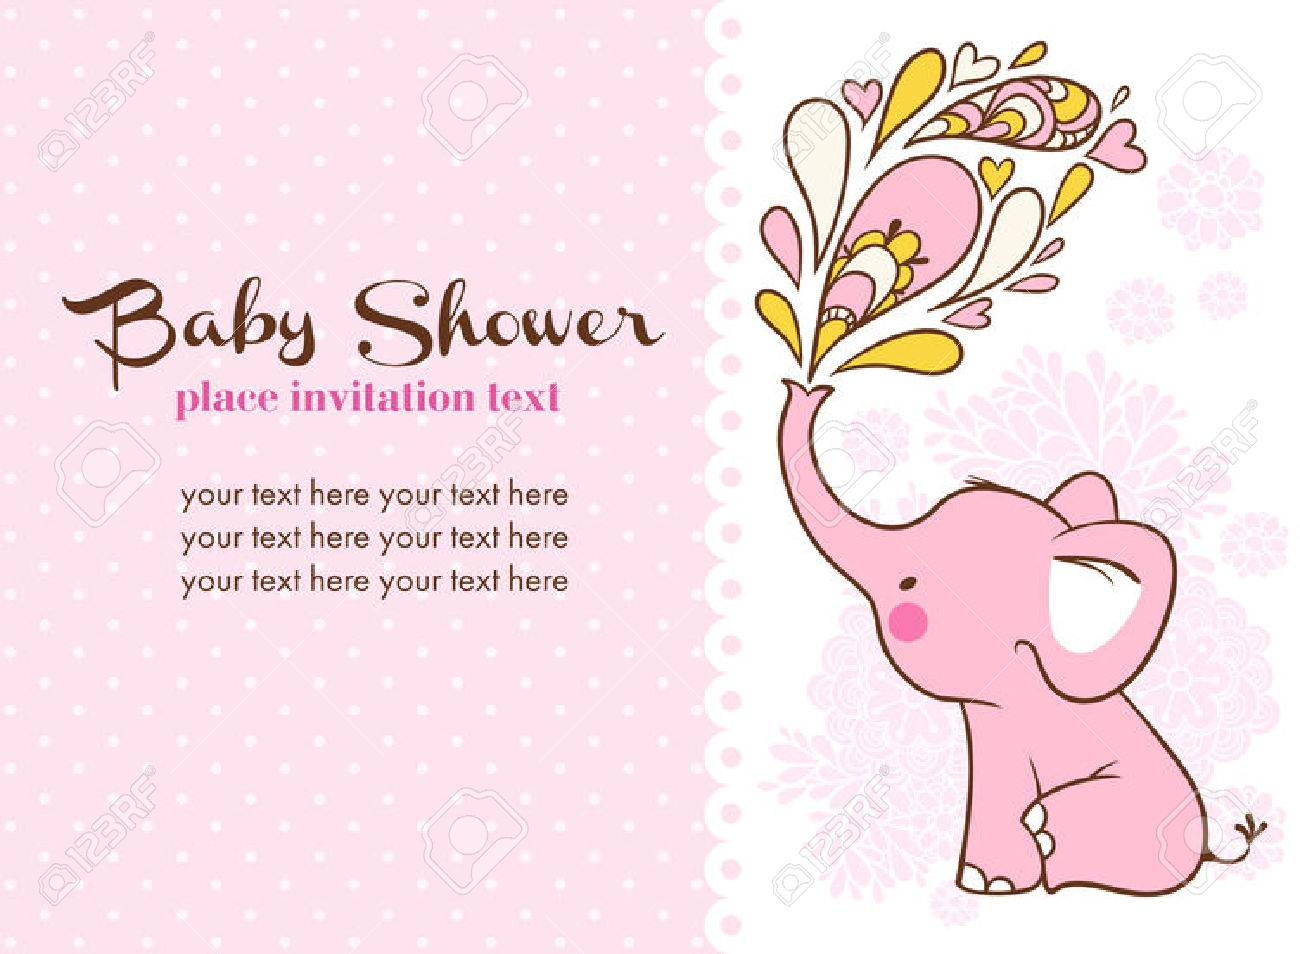 Children illustration with elephant and place for your text. Stock Vector - 48833577